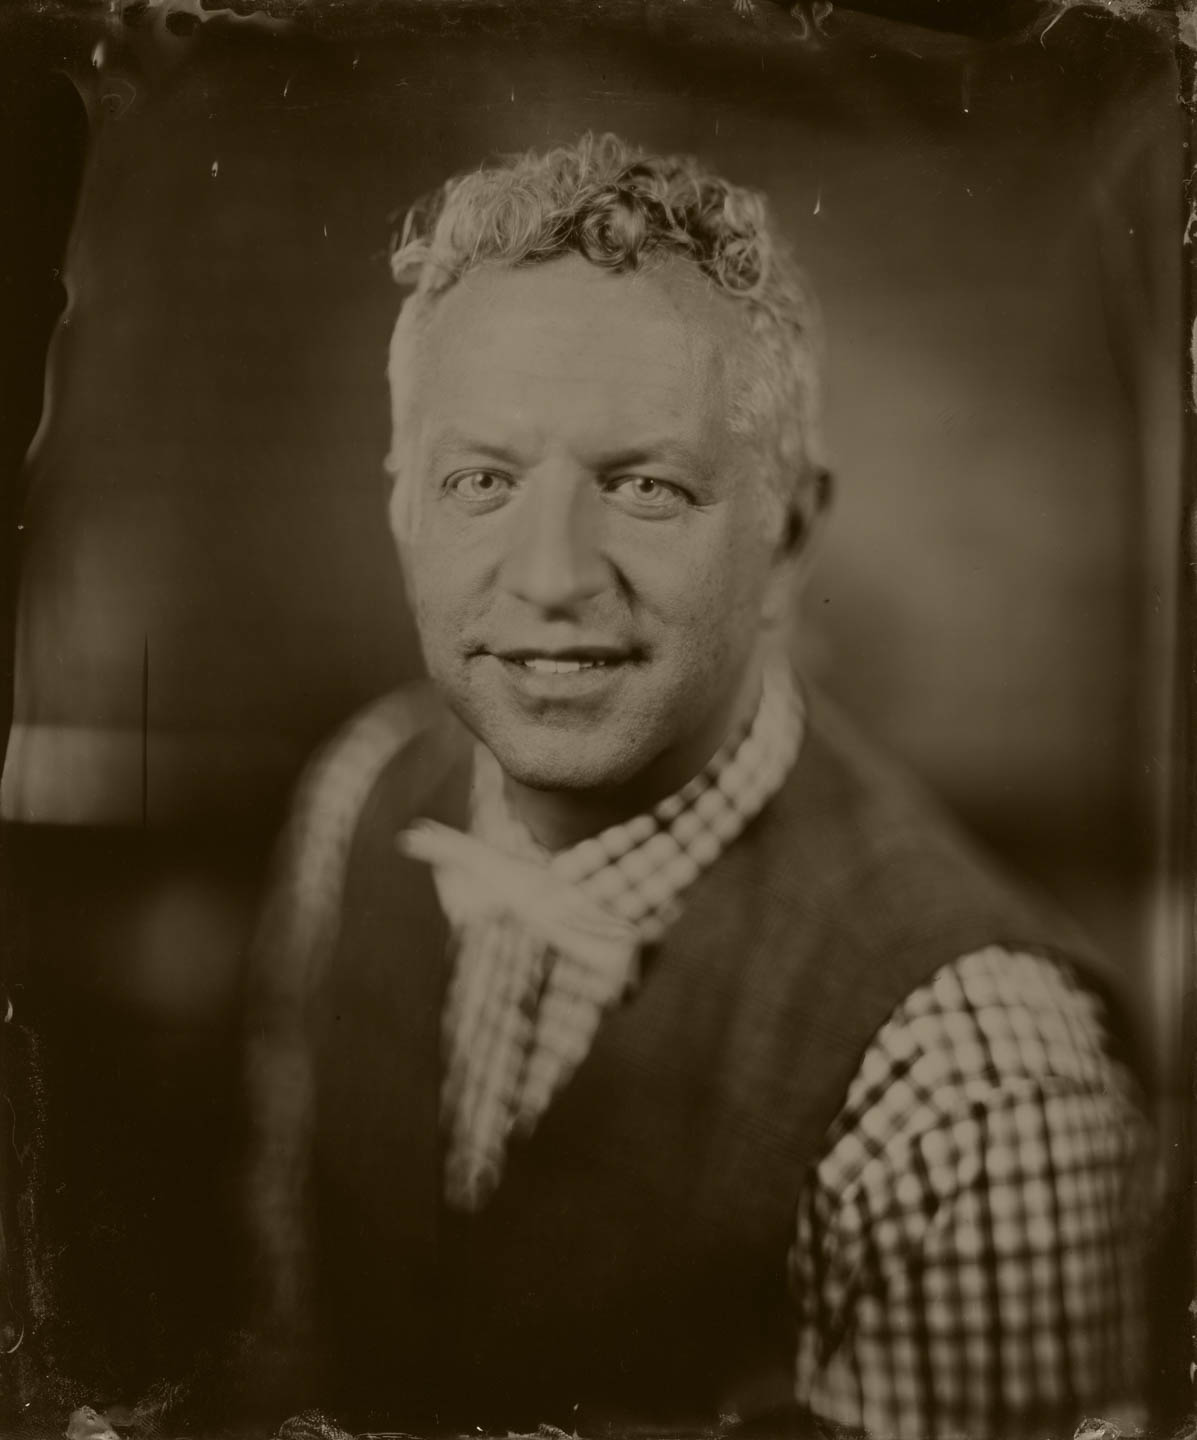 dav.d on 8x10 wet plate by Blackburn Studio